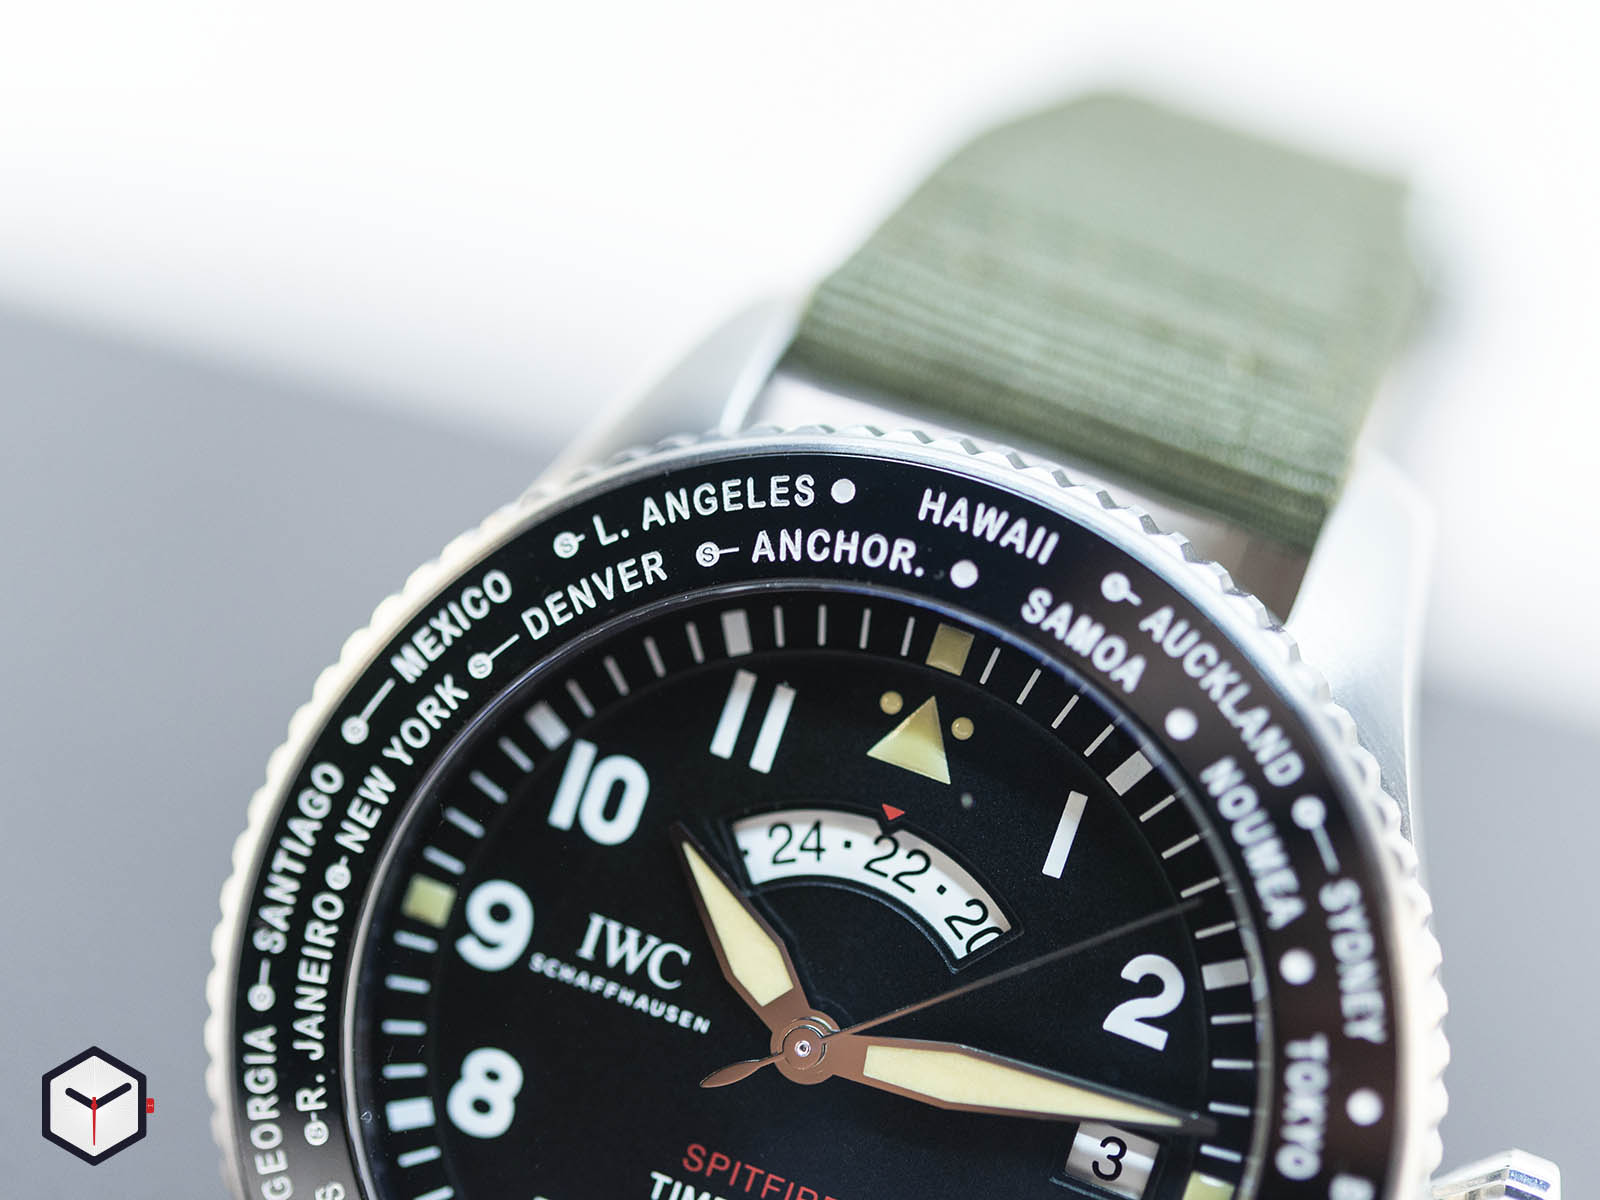 iw395501-iwc-pilot-s-watch-timezoner-spitfire-edition-the-longest-flight-3.jpg